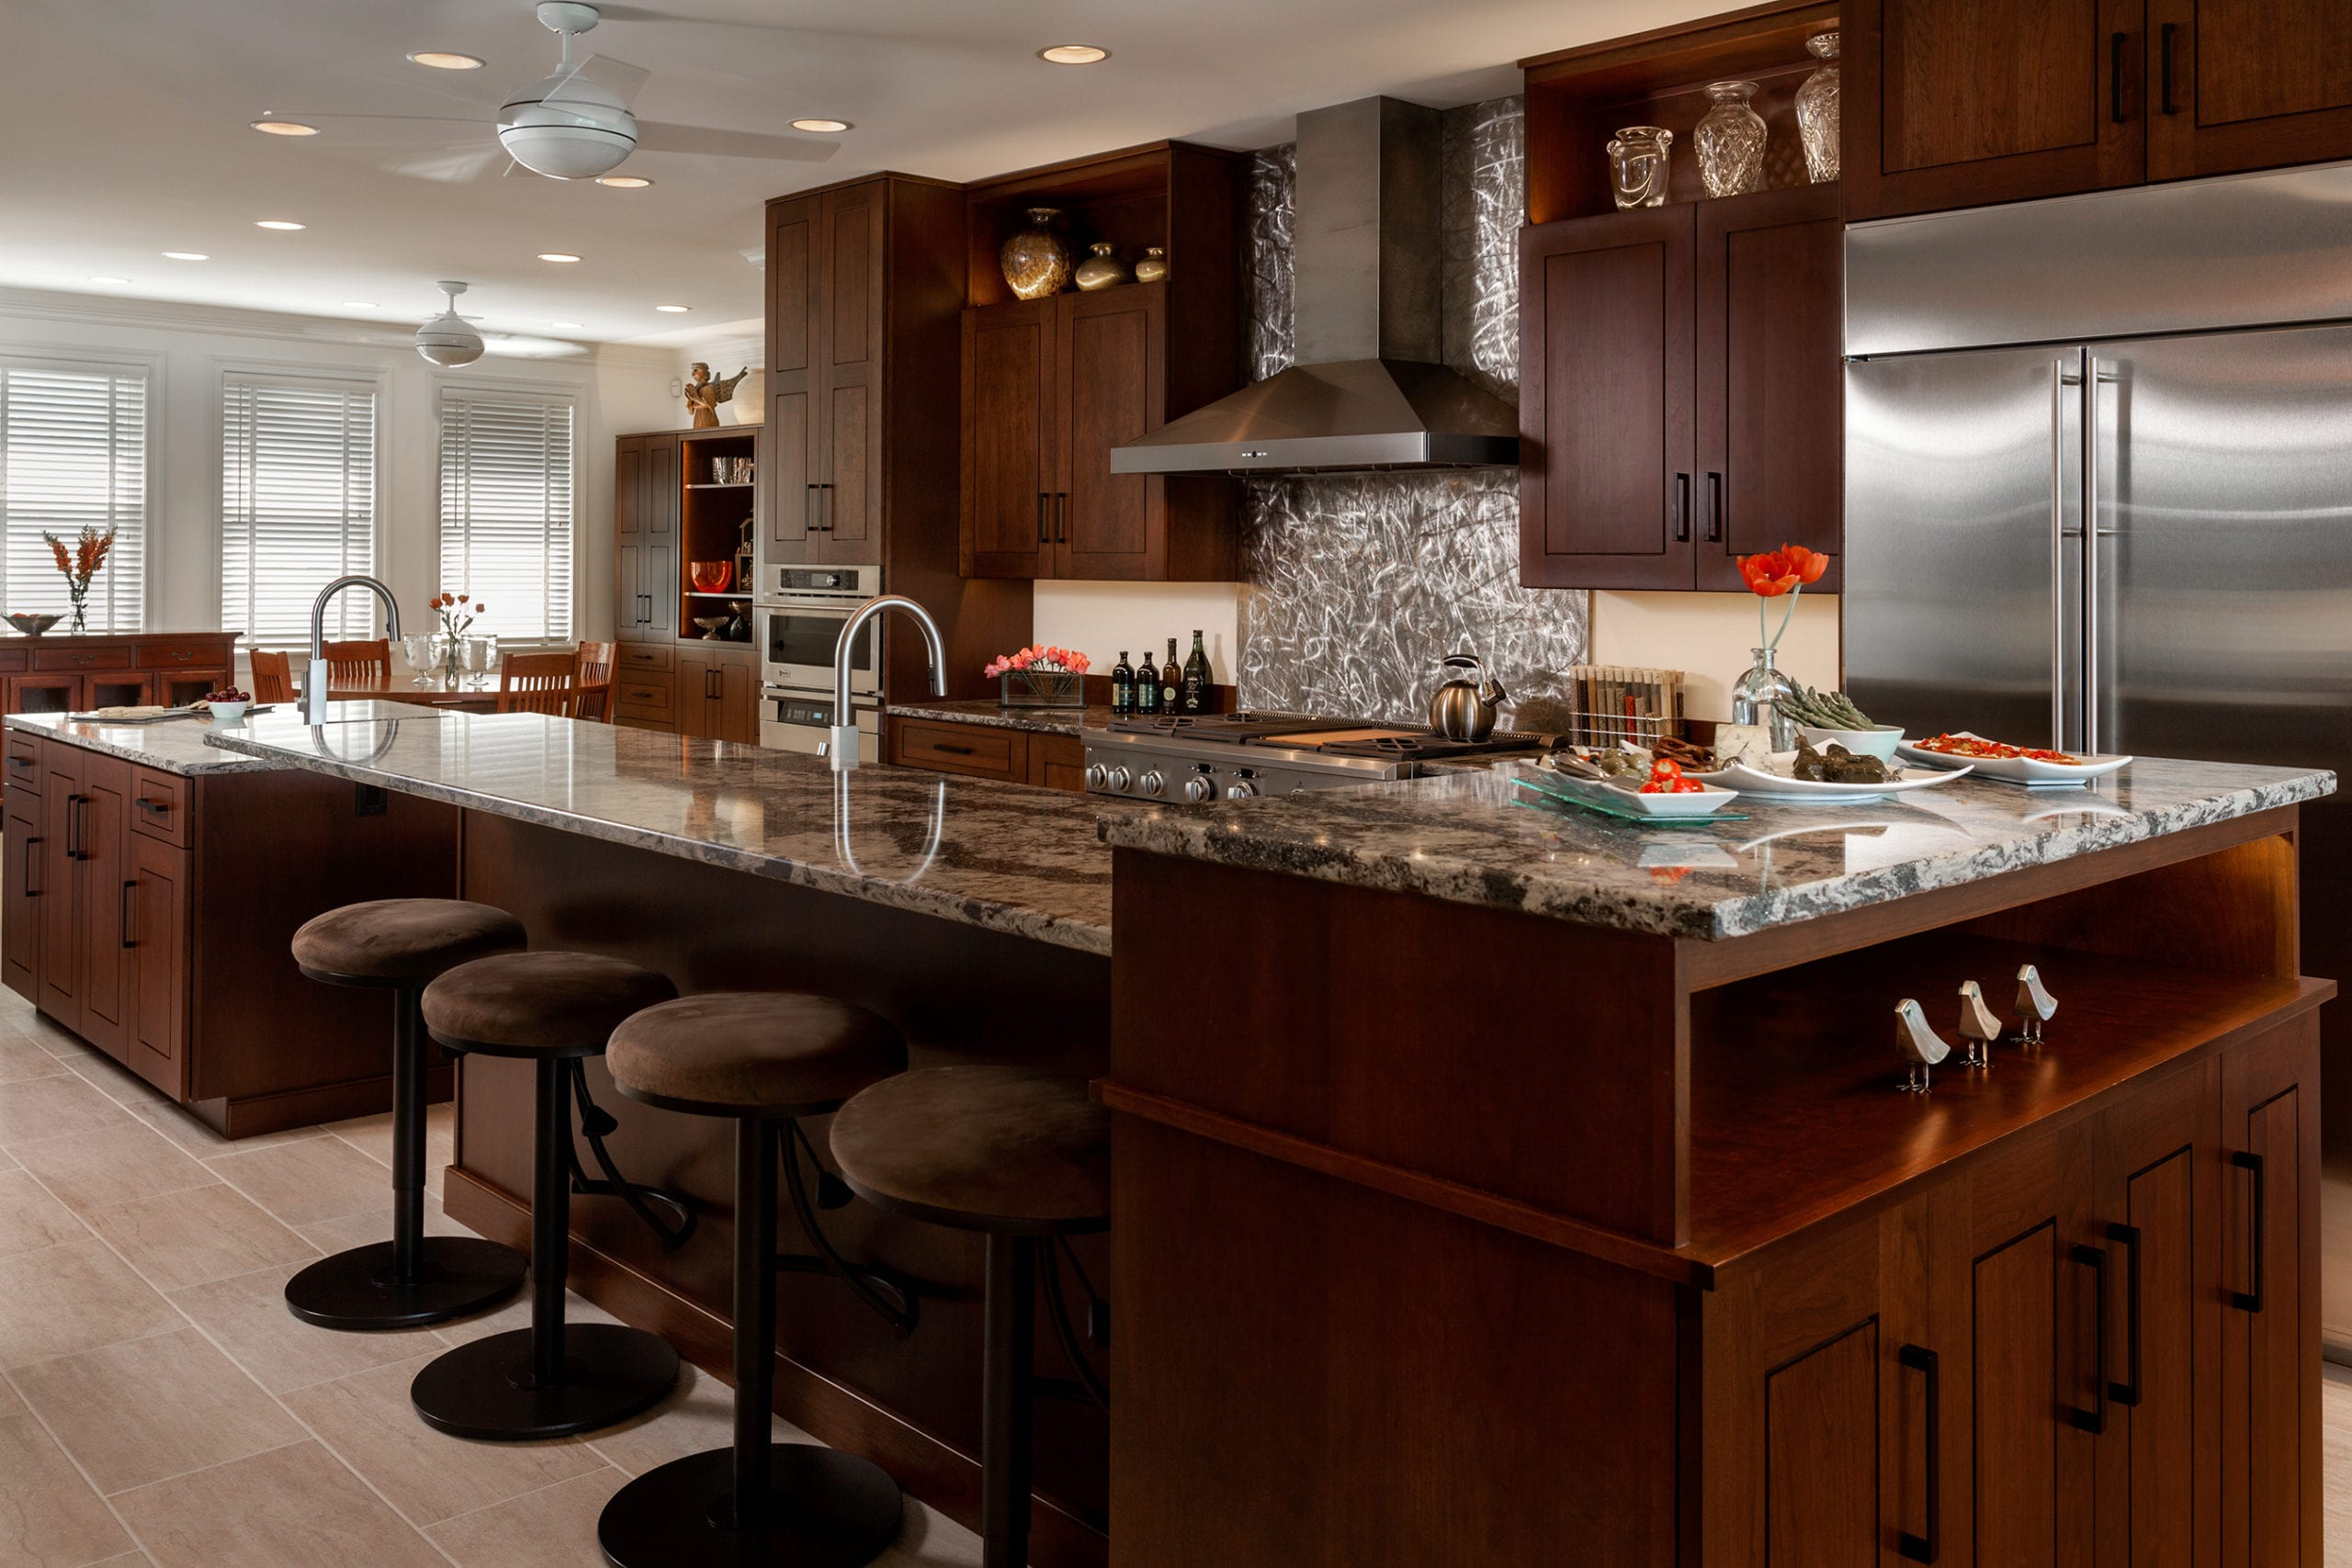 Remodel Design Choosing The Right Kitchen Remodeling Process Harrisburg Pa